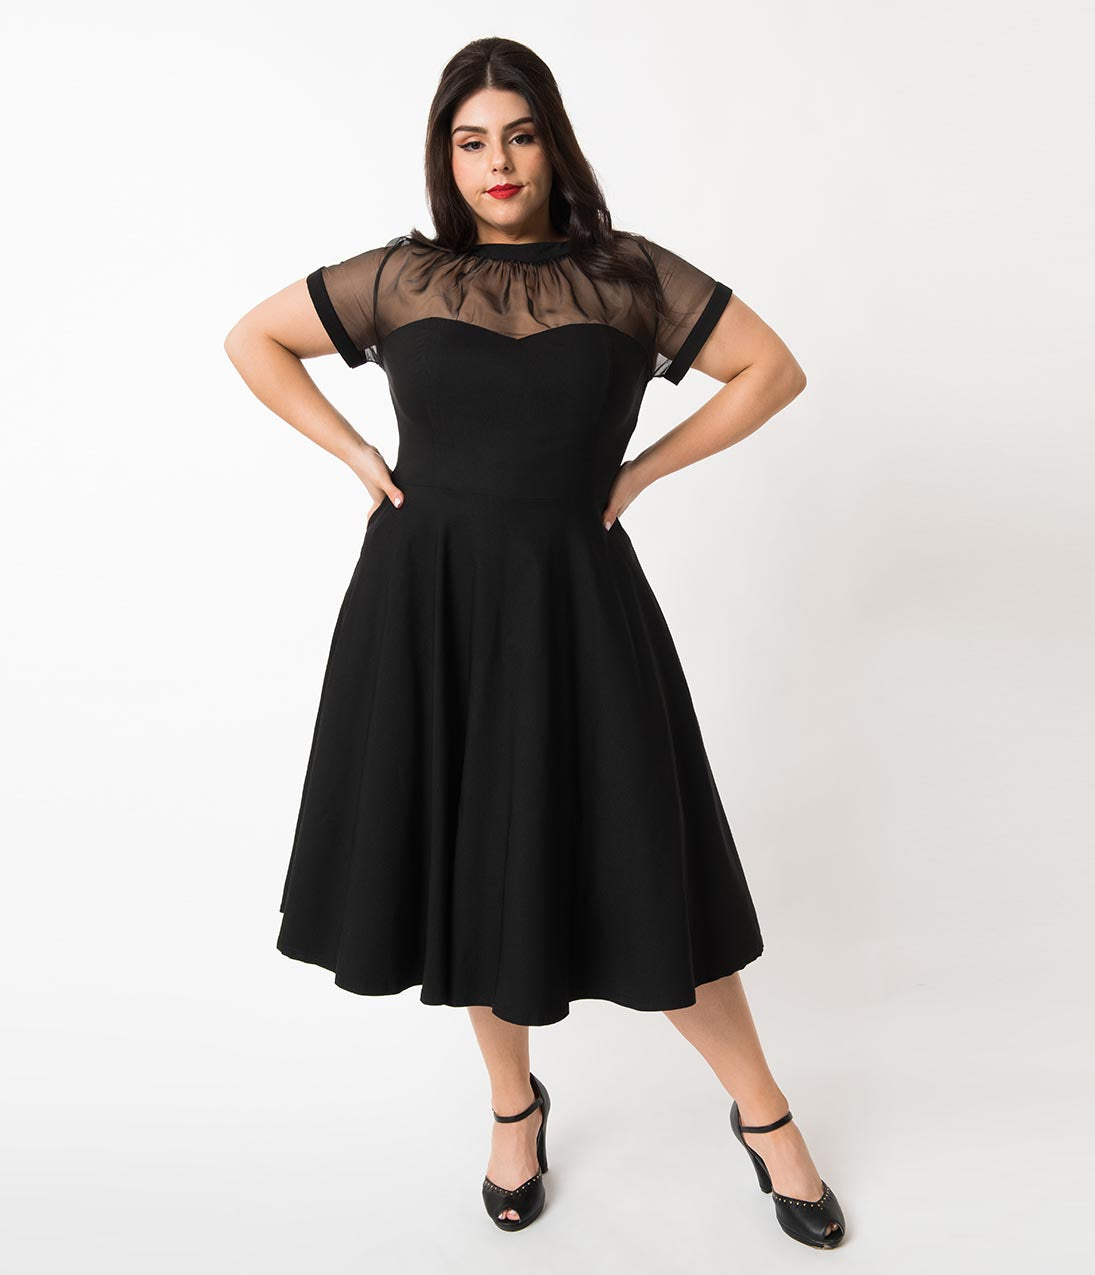 1960s Evening Dresses, Bridesmaids, Mothers Gowns Unique Vintage Plus Size 1950S Black Sheer Bodice Shirelle Swing Dress $78.00 AT vintagedancer.com